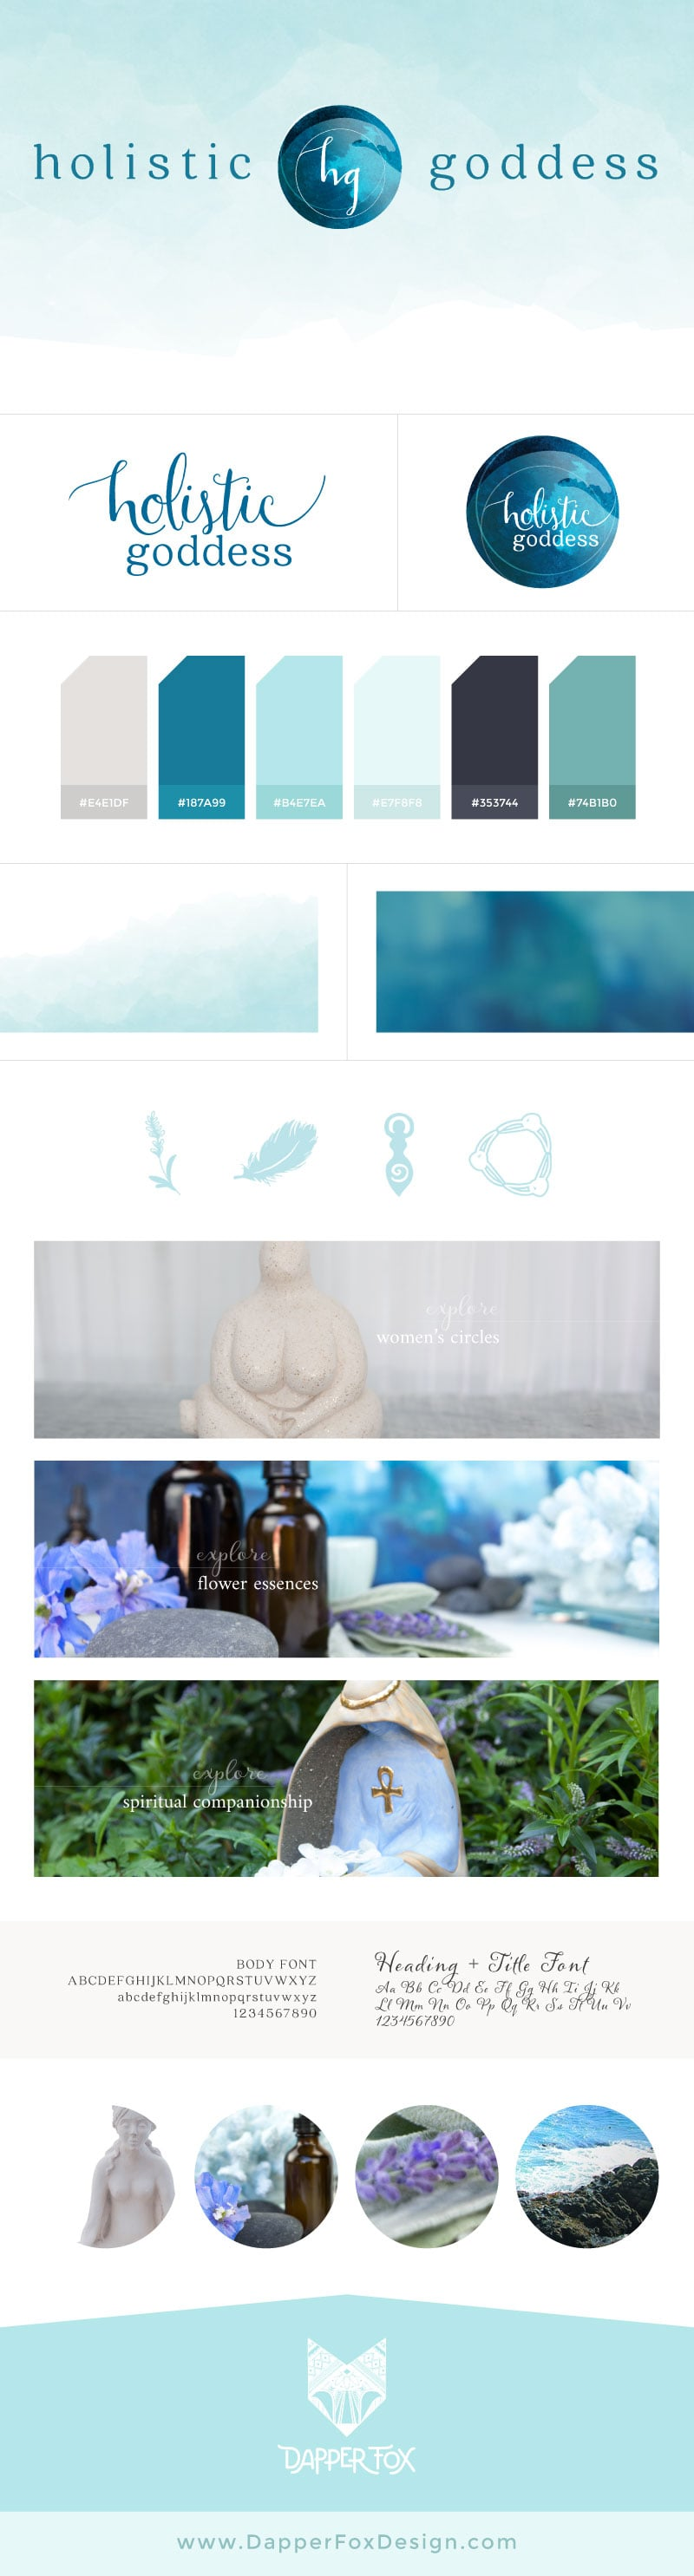 Holistic Goddess Brand Board and Logo Design by Dapper Fox Design - Ocean Logo, blue, modern logo design